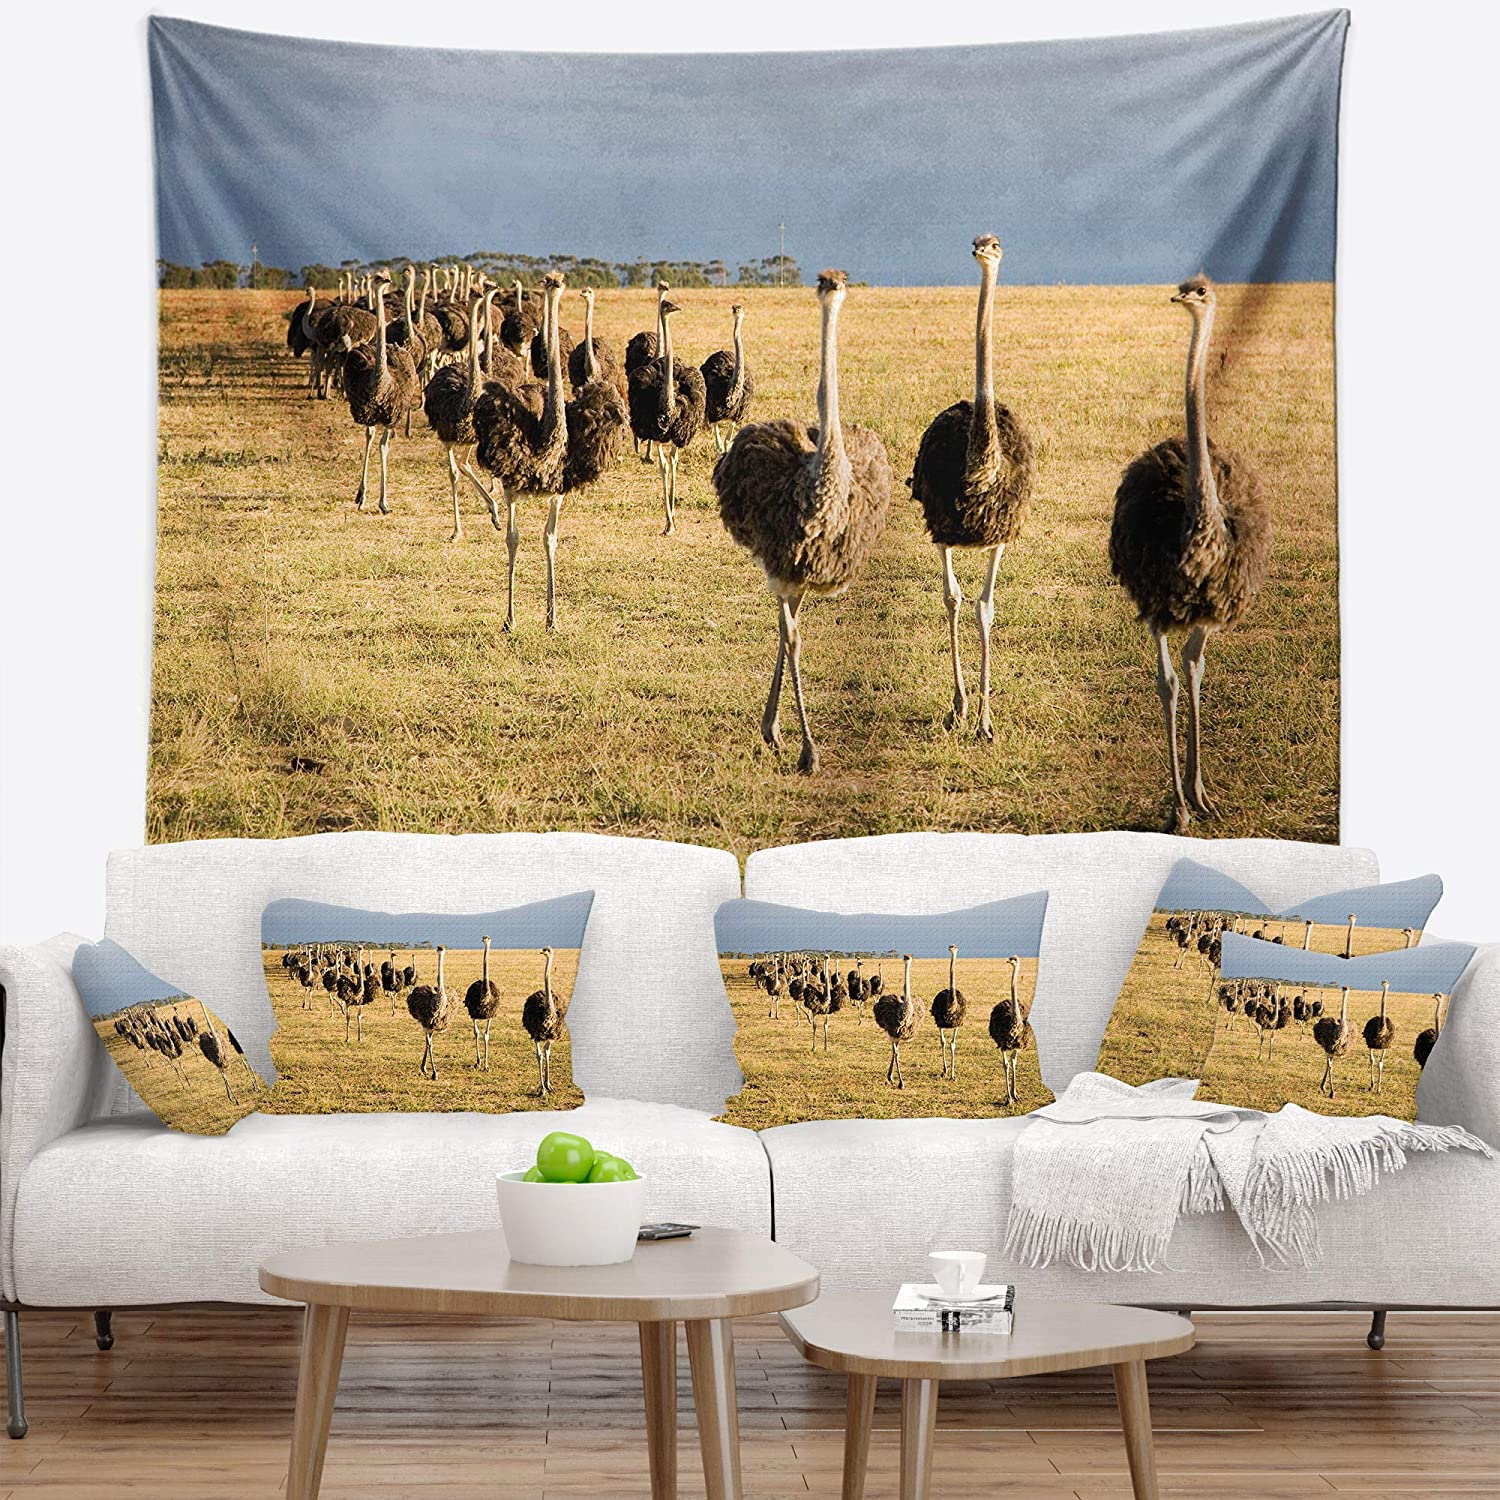 Designart ' Ostriches Walking in South Africa' African Tapestry Blanket Décor Wall Art for Home and Office Large: 60